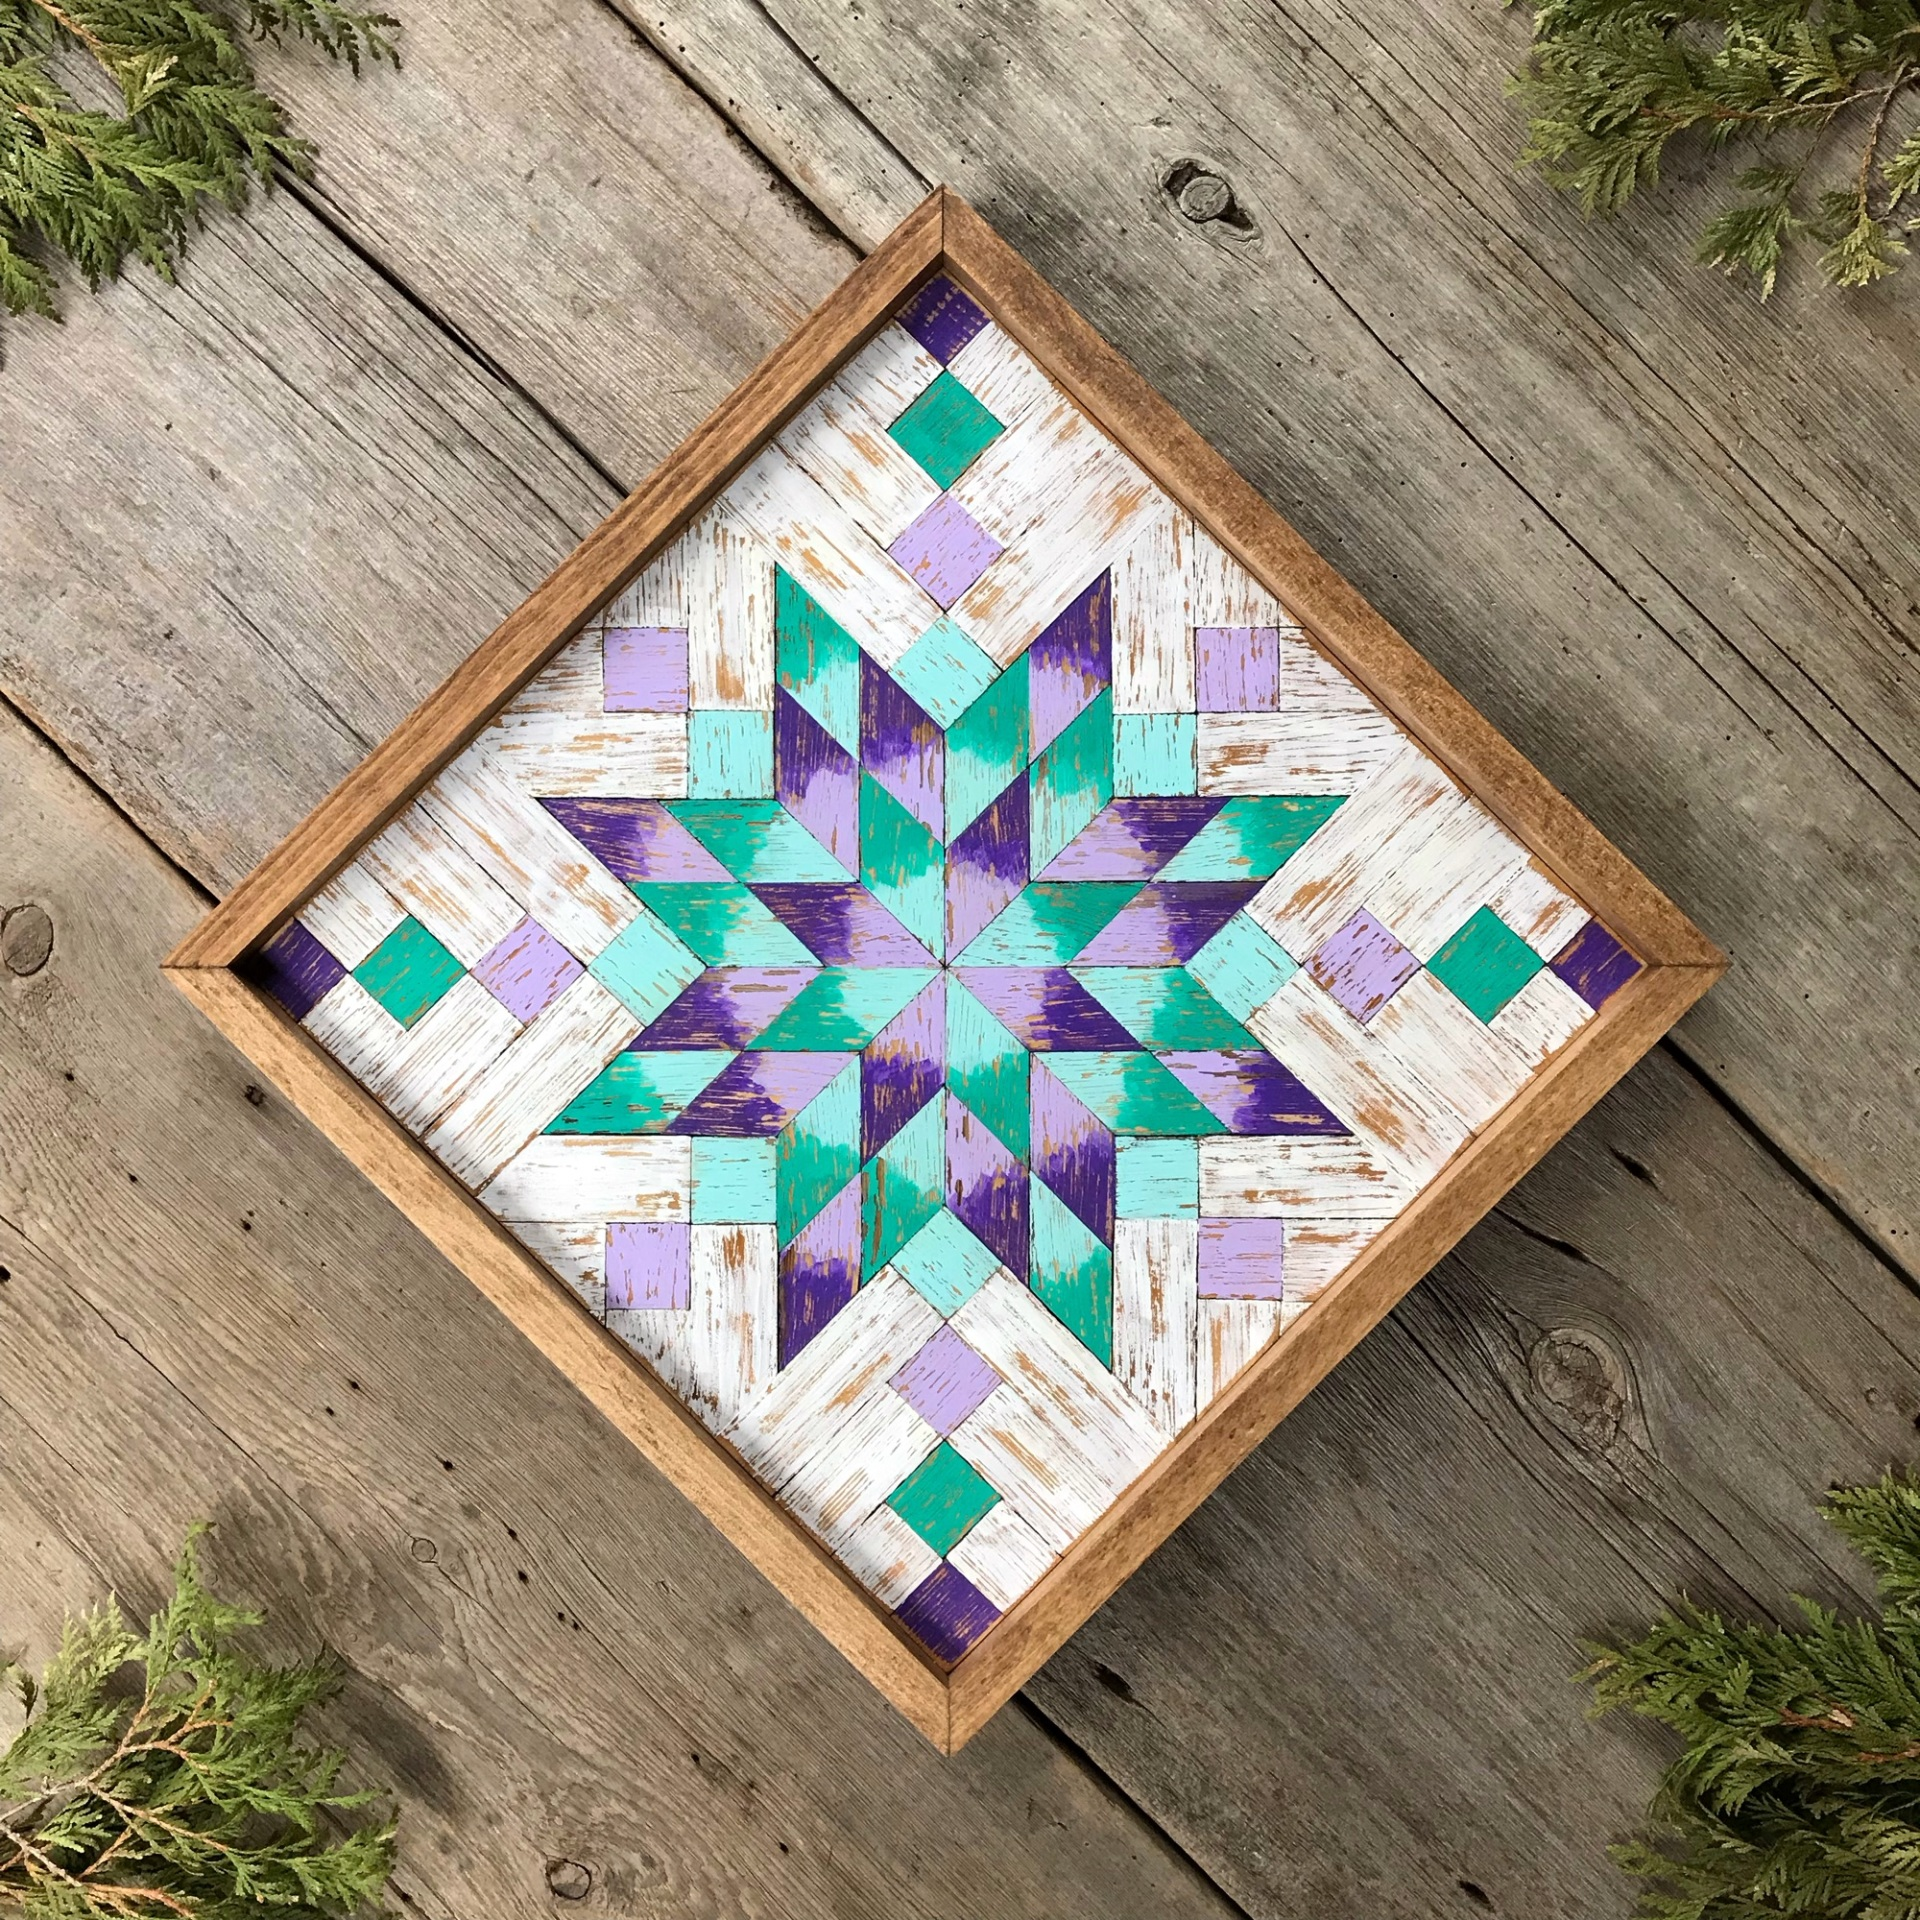 Barn Quilt, Wood Quilt Square, Wooden Quilt Blocks, Colorful Geometric Patterns, Wood Wall Art, Star Quilt Square